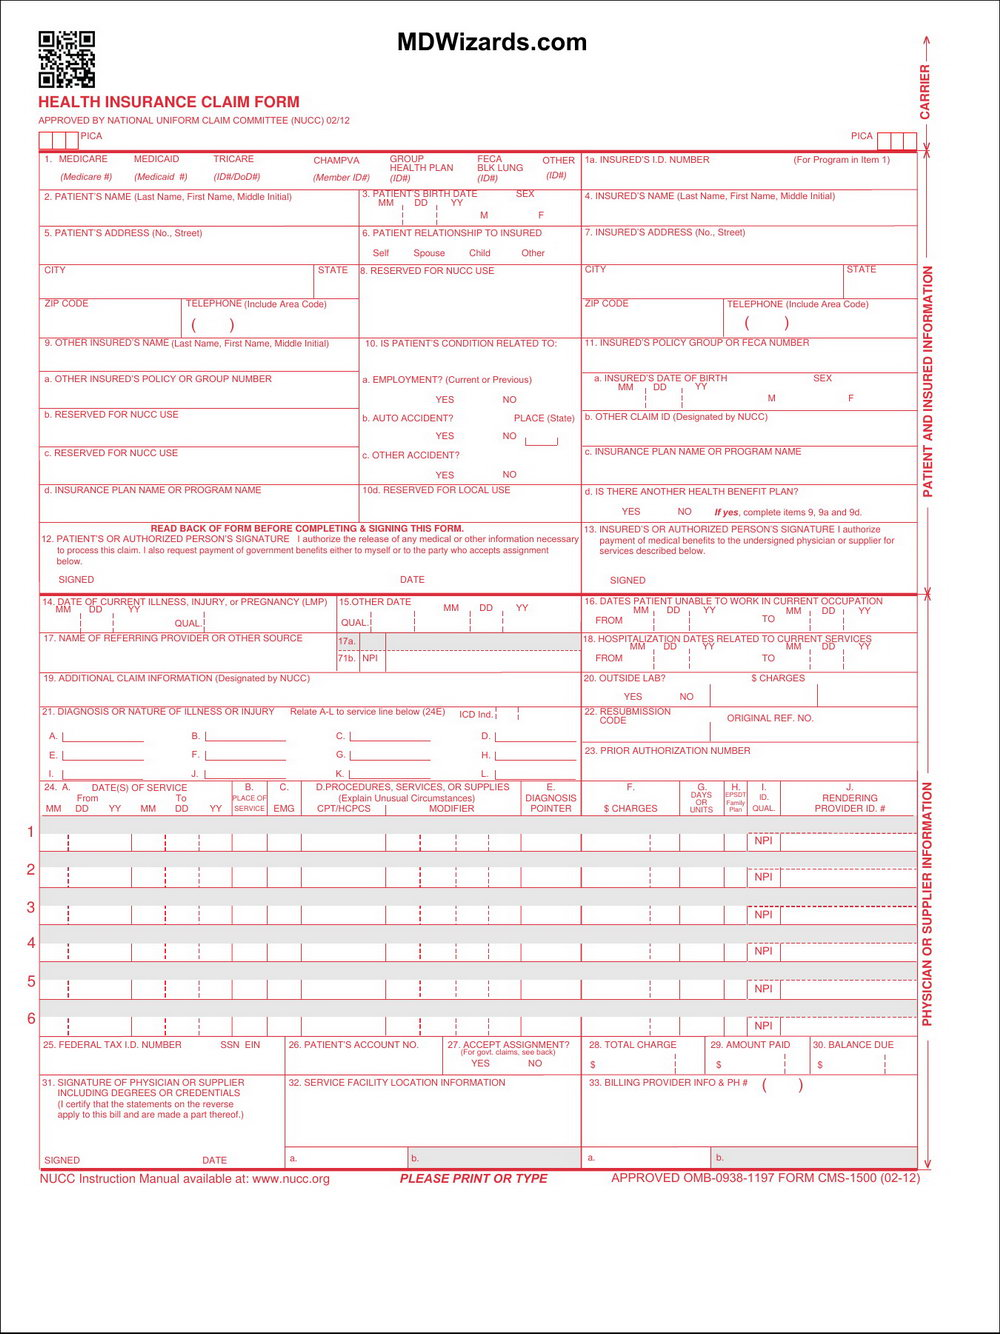 Blank Cms 1500 Form Pdf Download